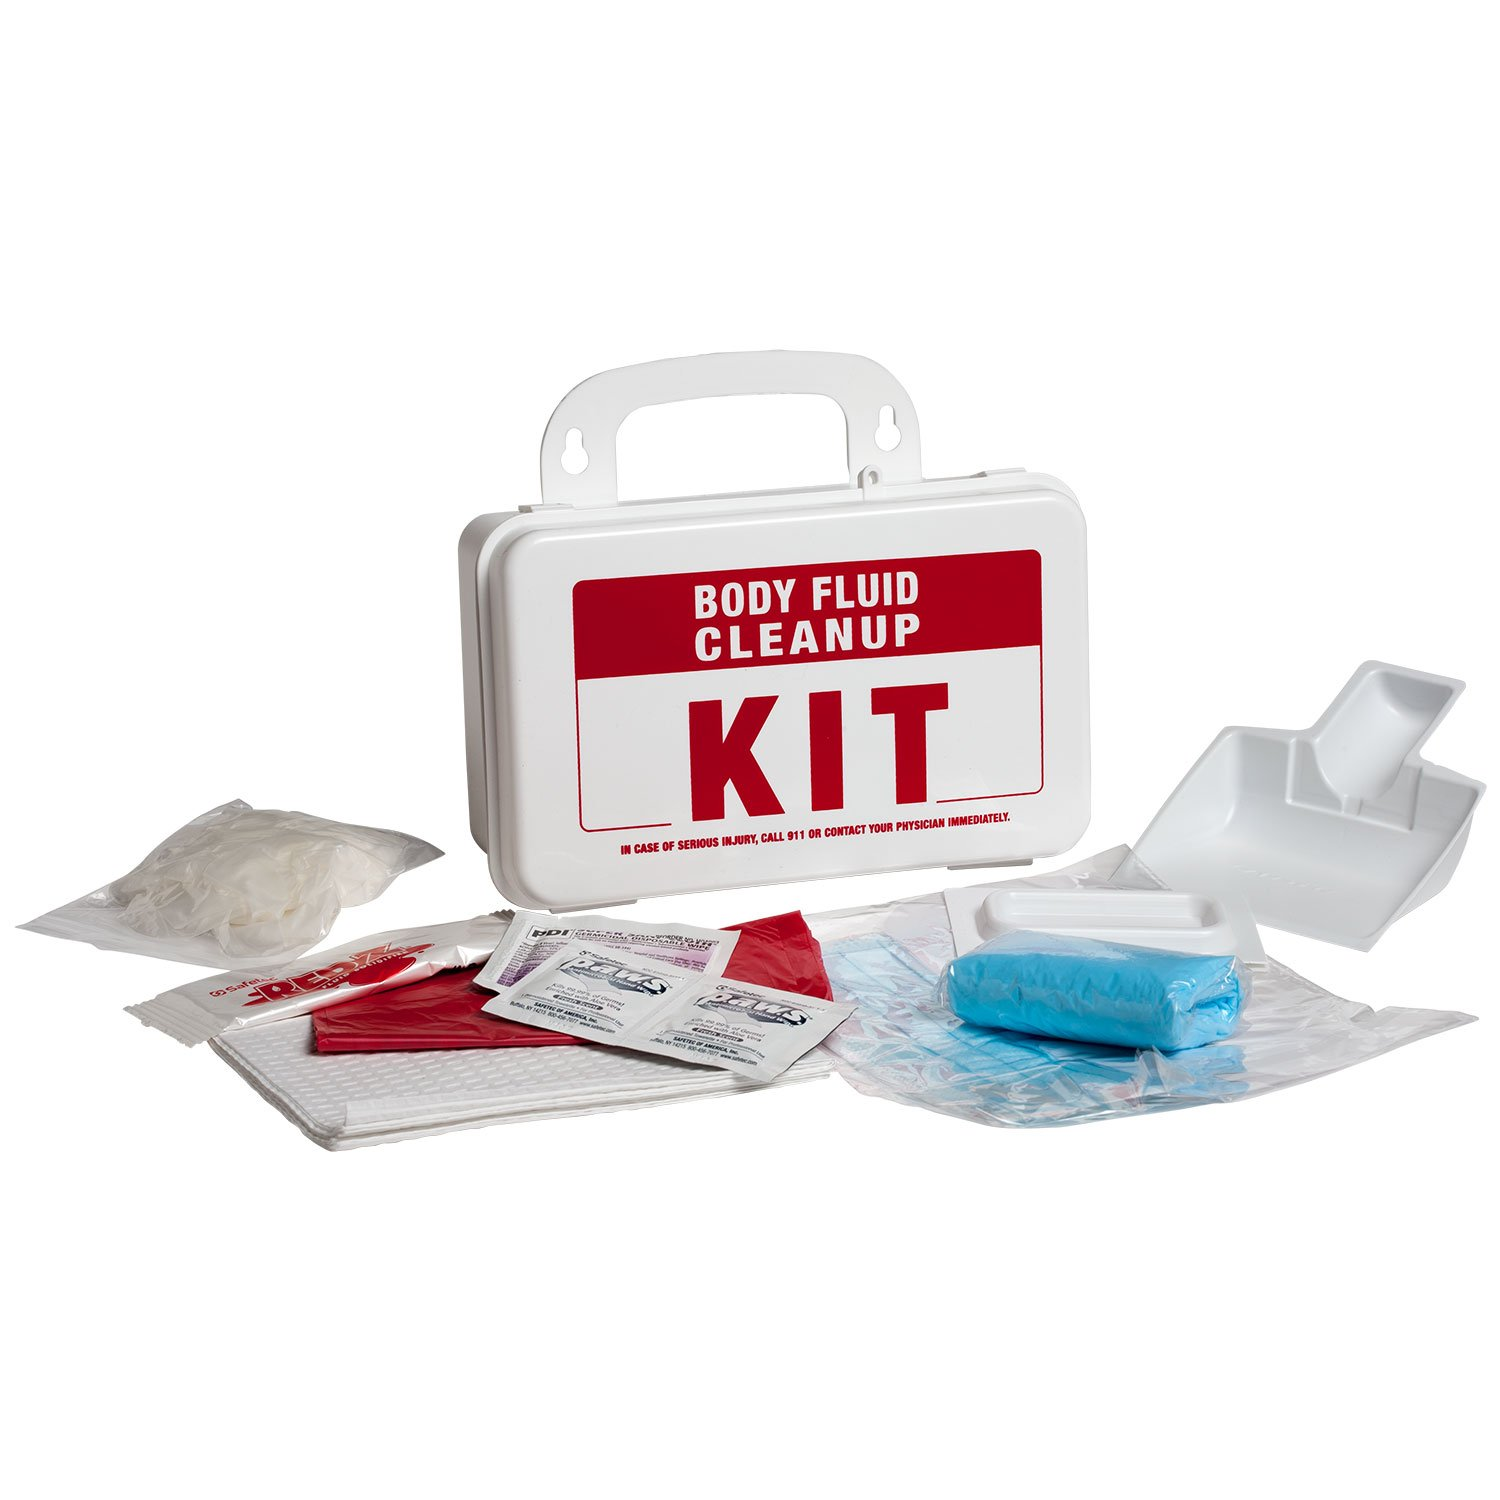 ProStat First Aid 2222 14 Piece Body Fluid Clean Up Kit with Plastic Box ((2.Units))